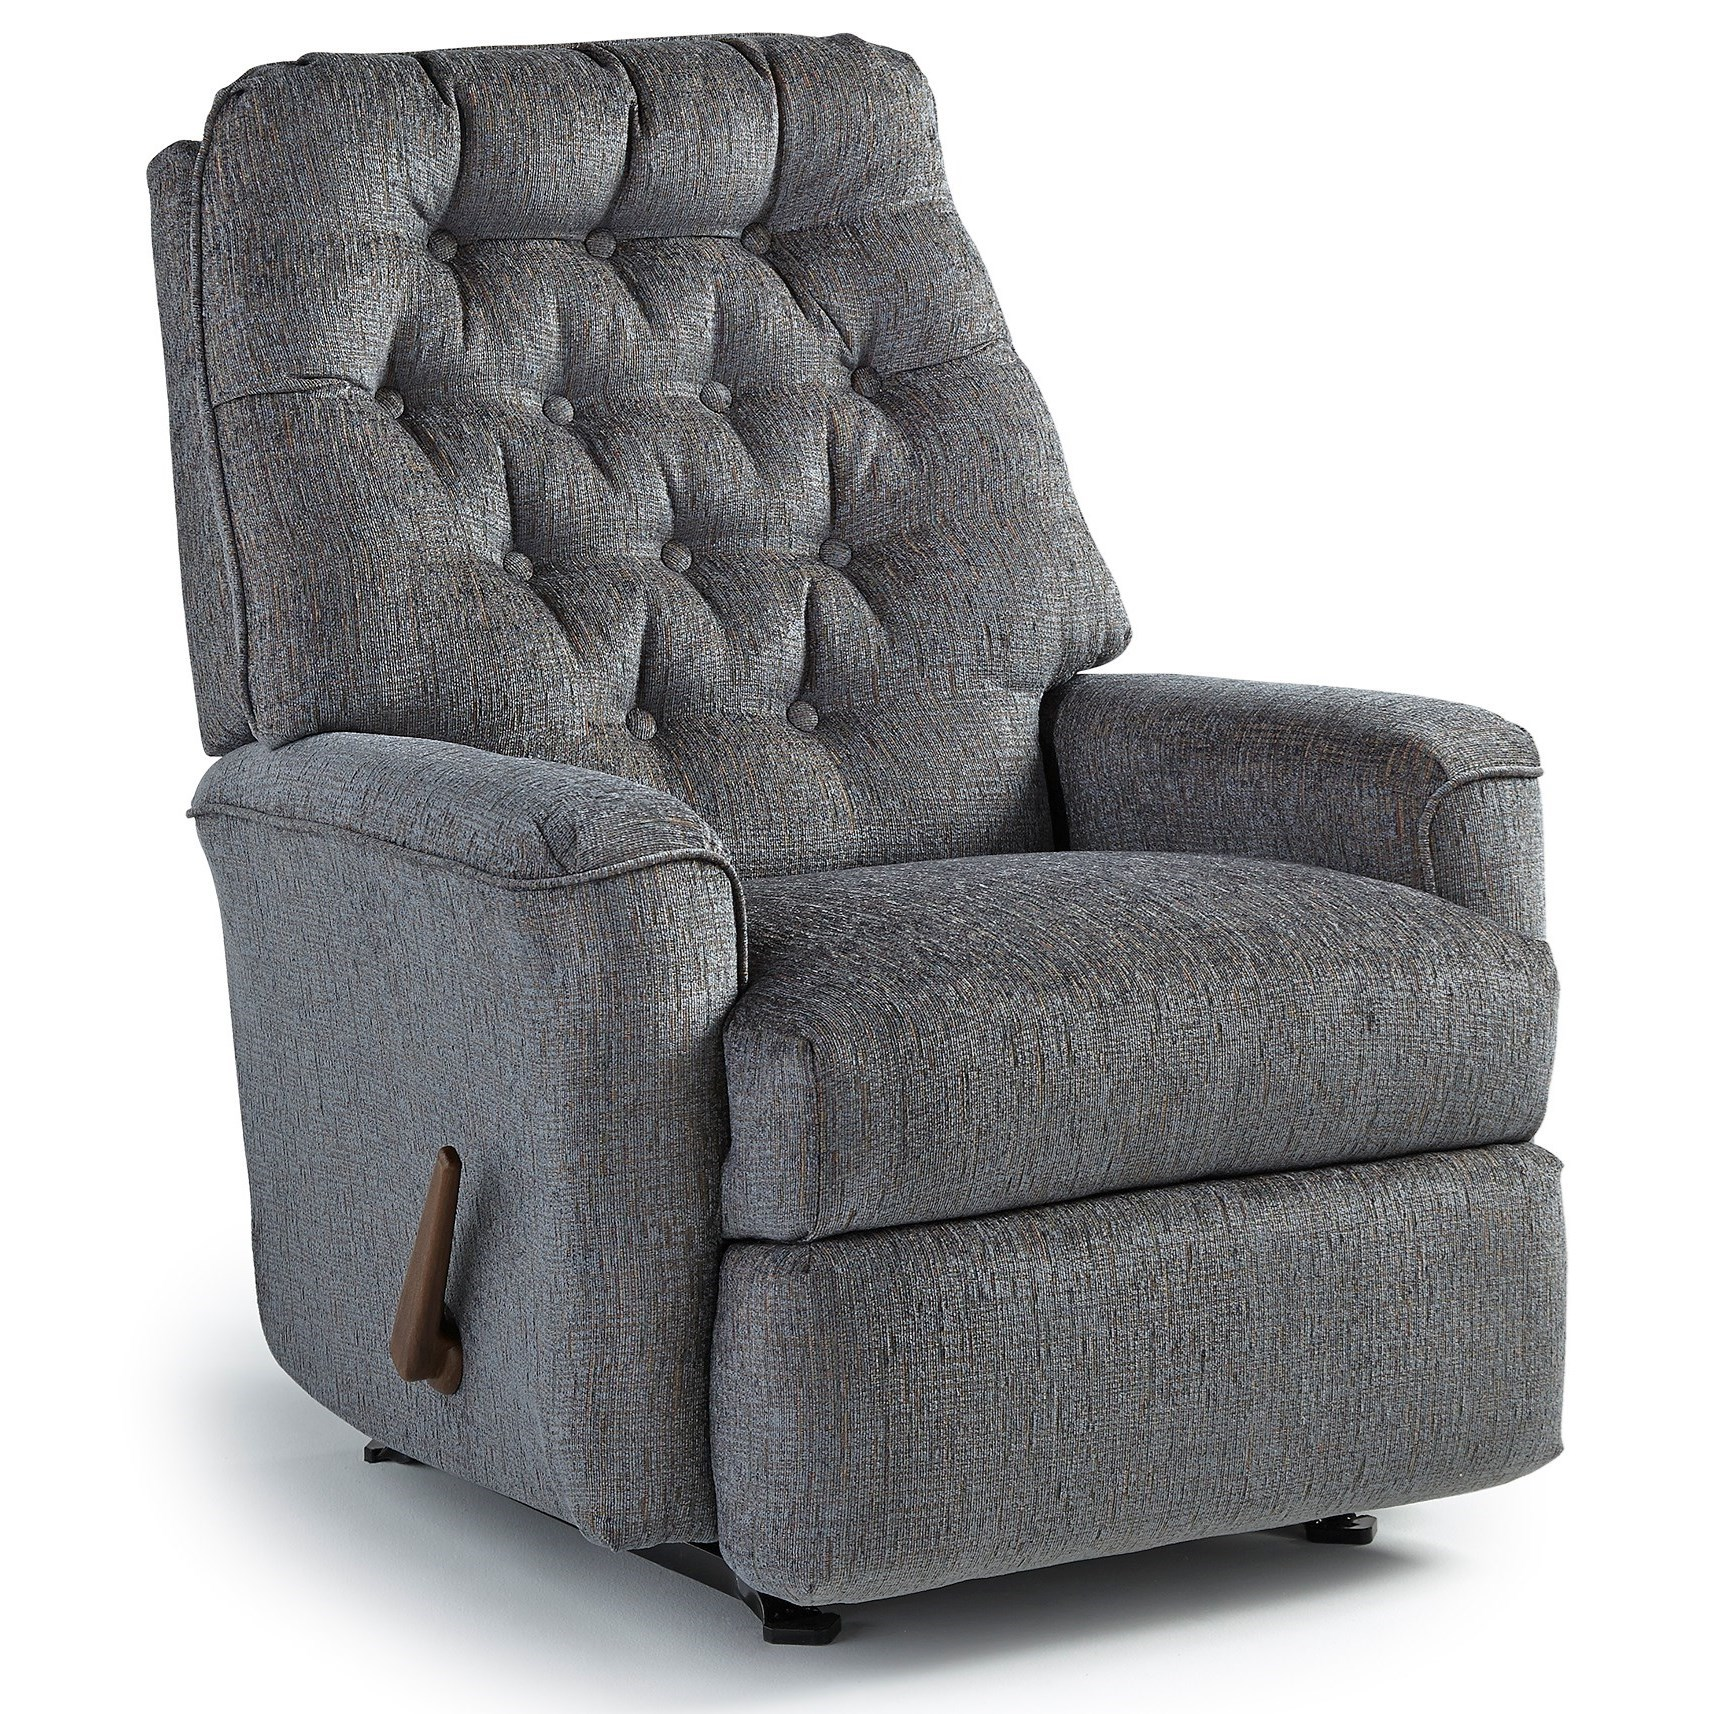 Best Home Furnishings Recliners - Medium Mexi Swivel Rocker Recliner - Item Number: 7NW59